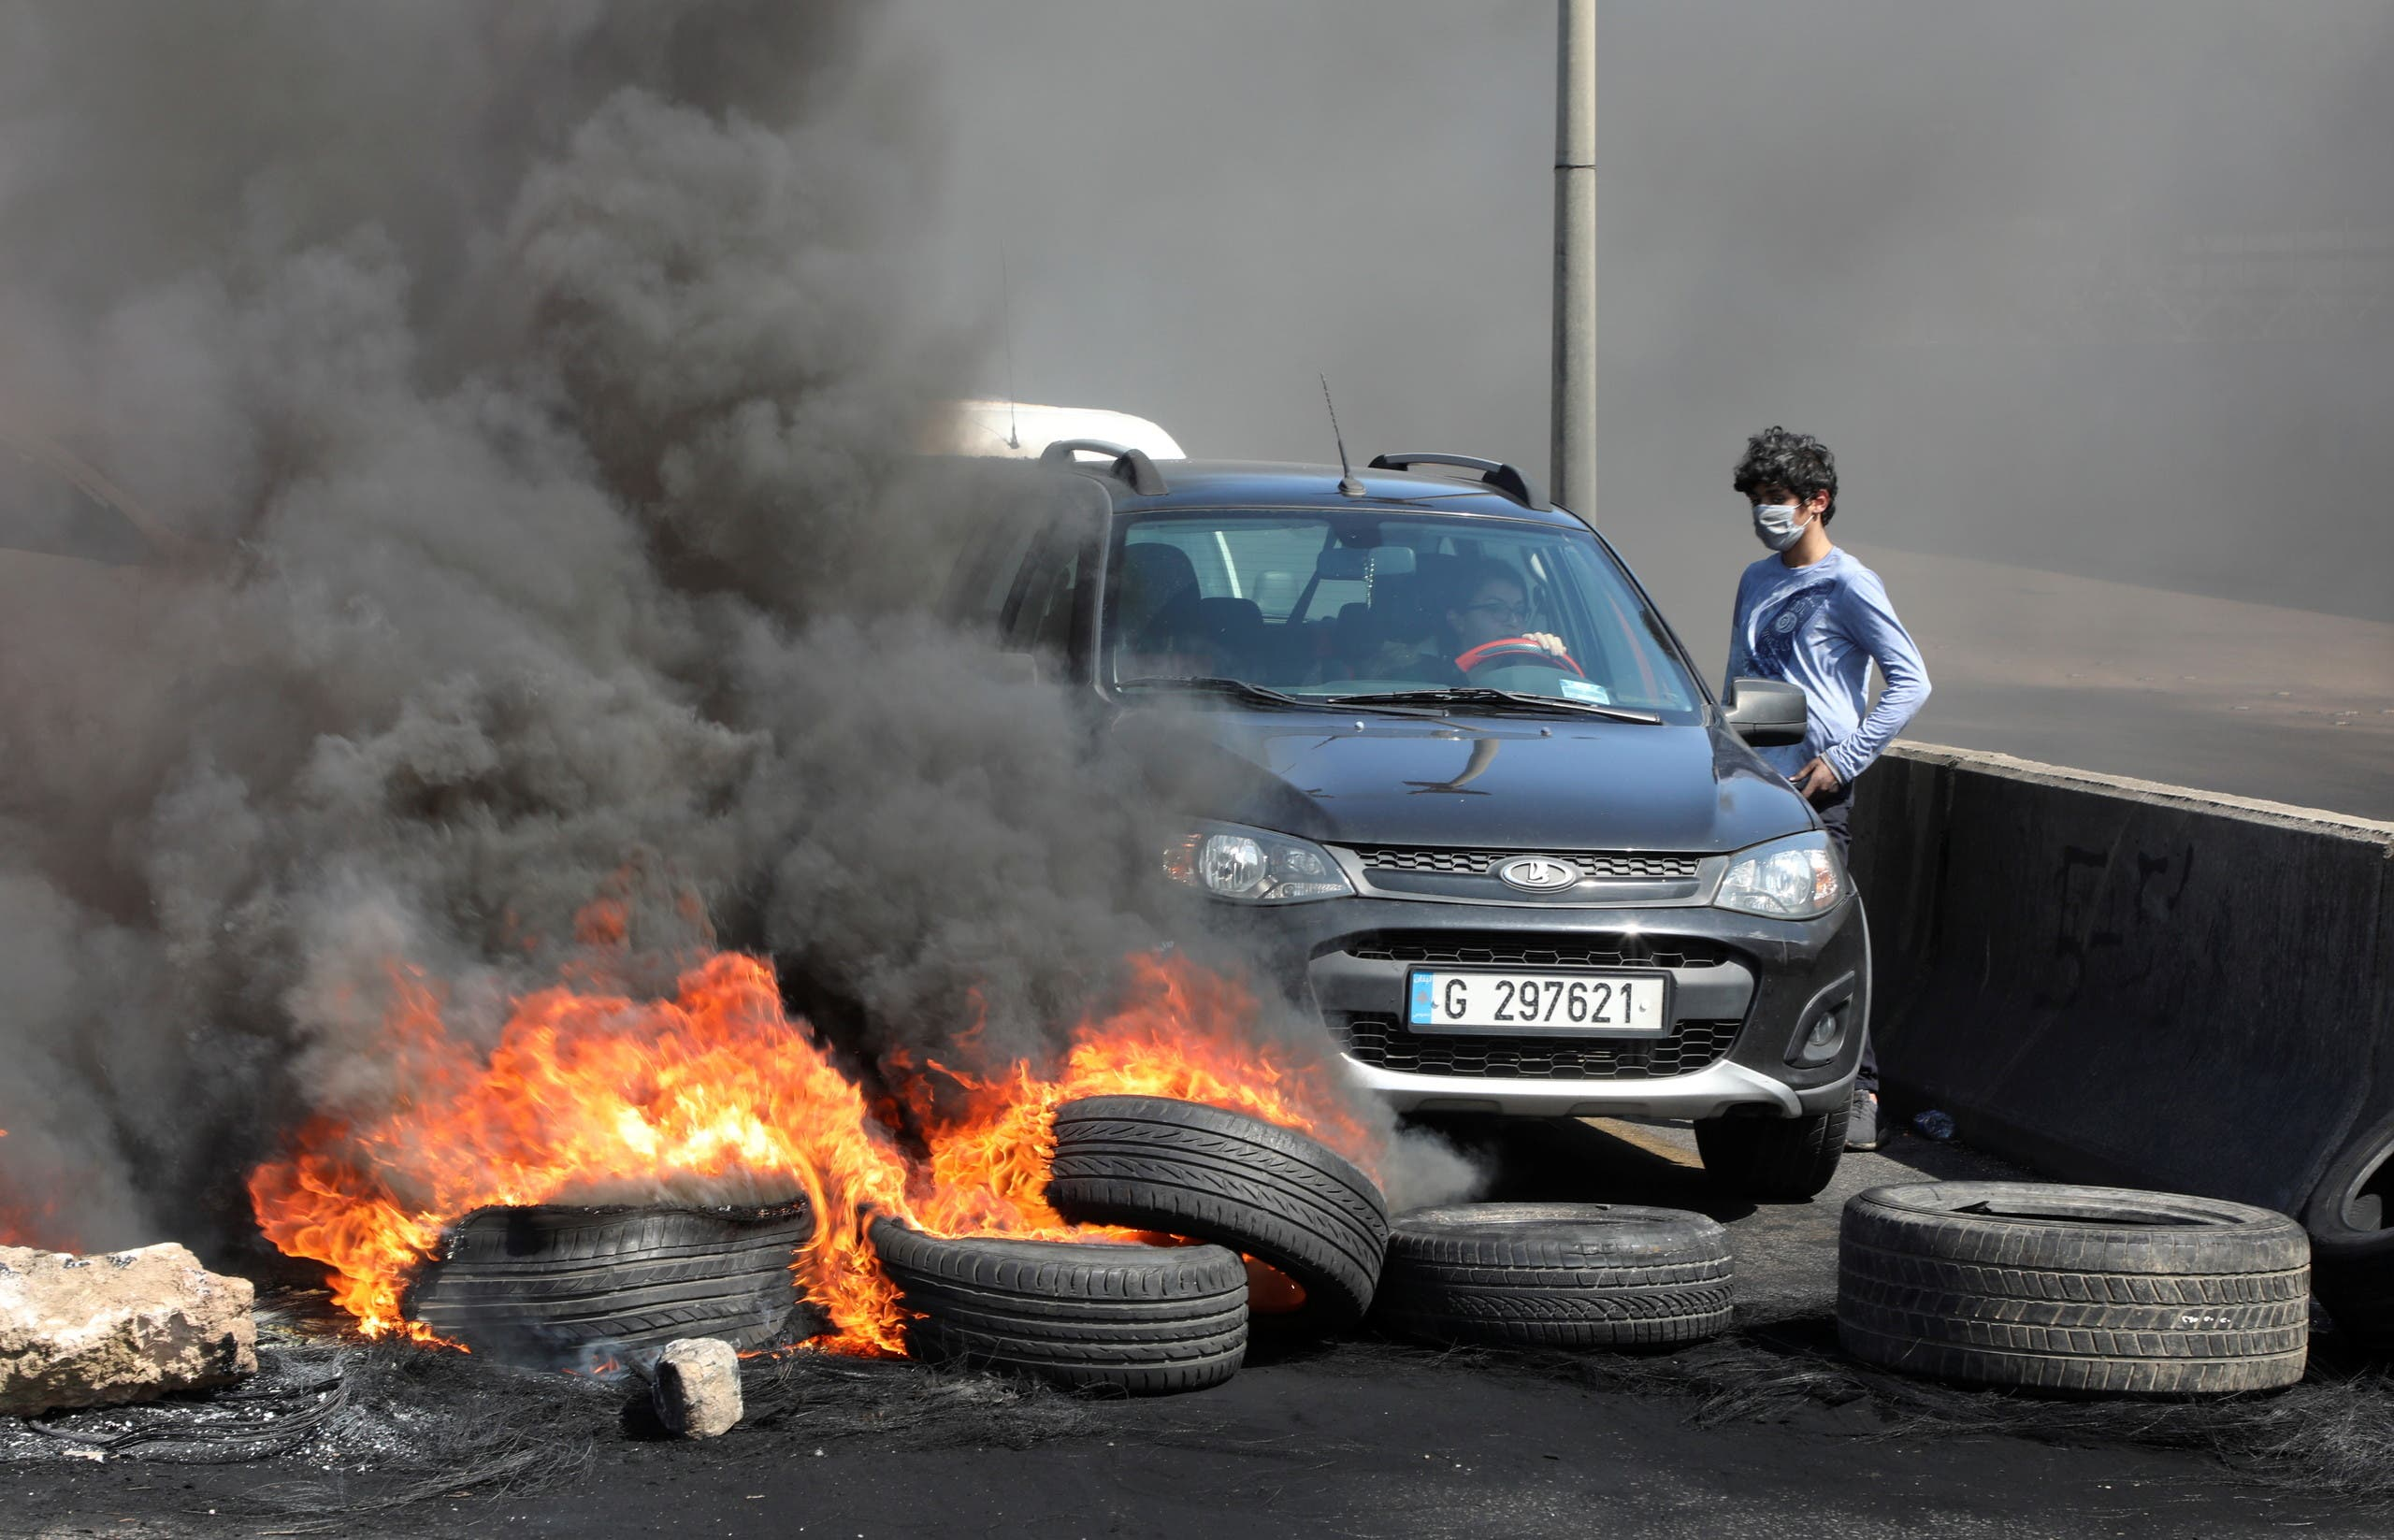 A woman tries to cross a blocked road with burning tires during a protest against the fall in Lebanese pound currency and mounting economic hardships in Khaldeh, Lebanon March 8, 2021. (Reuters)